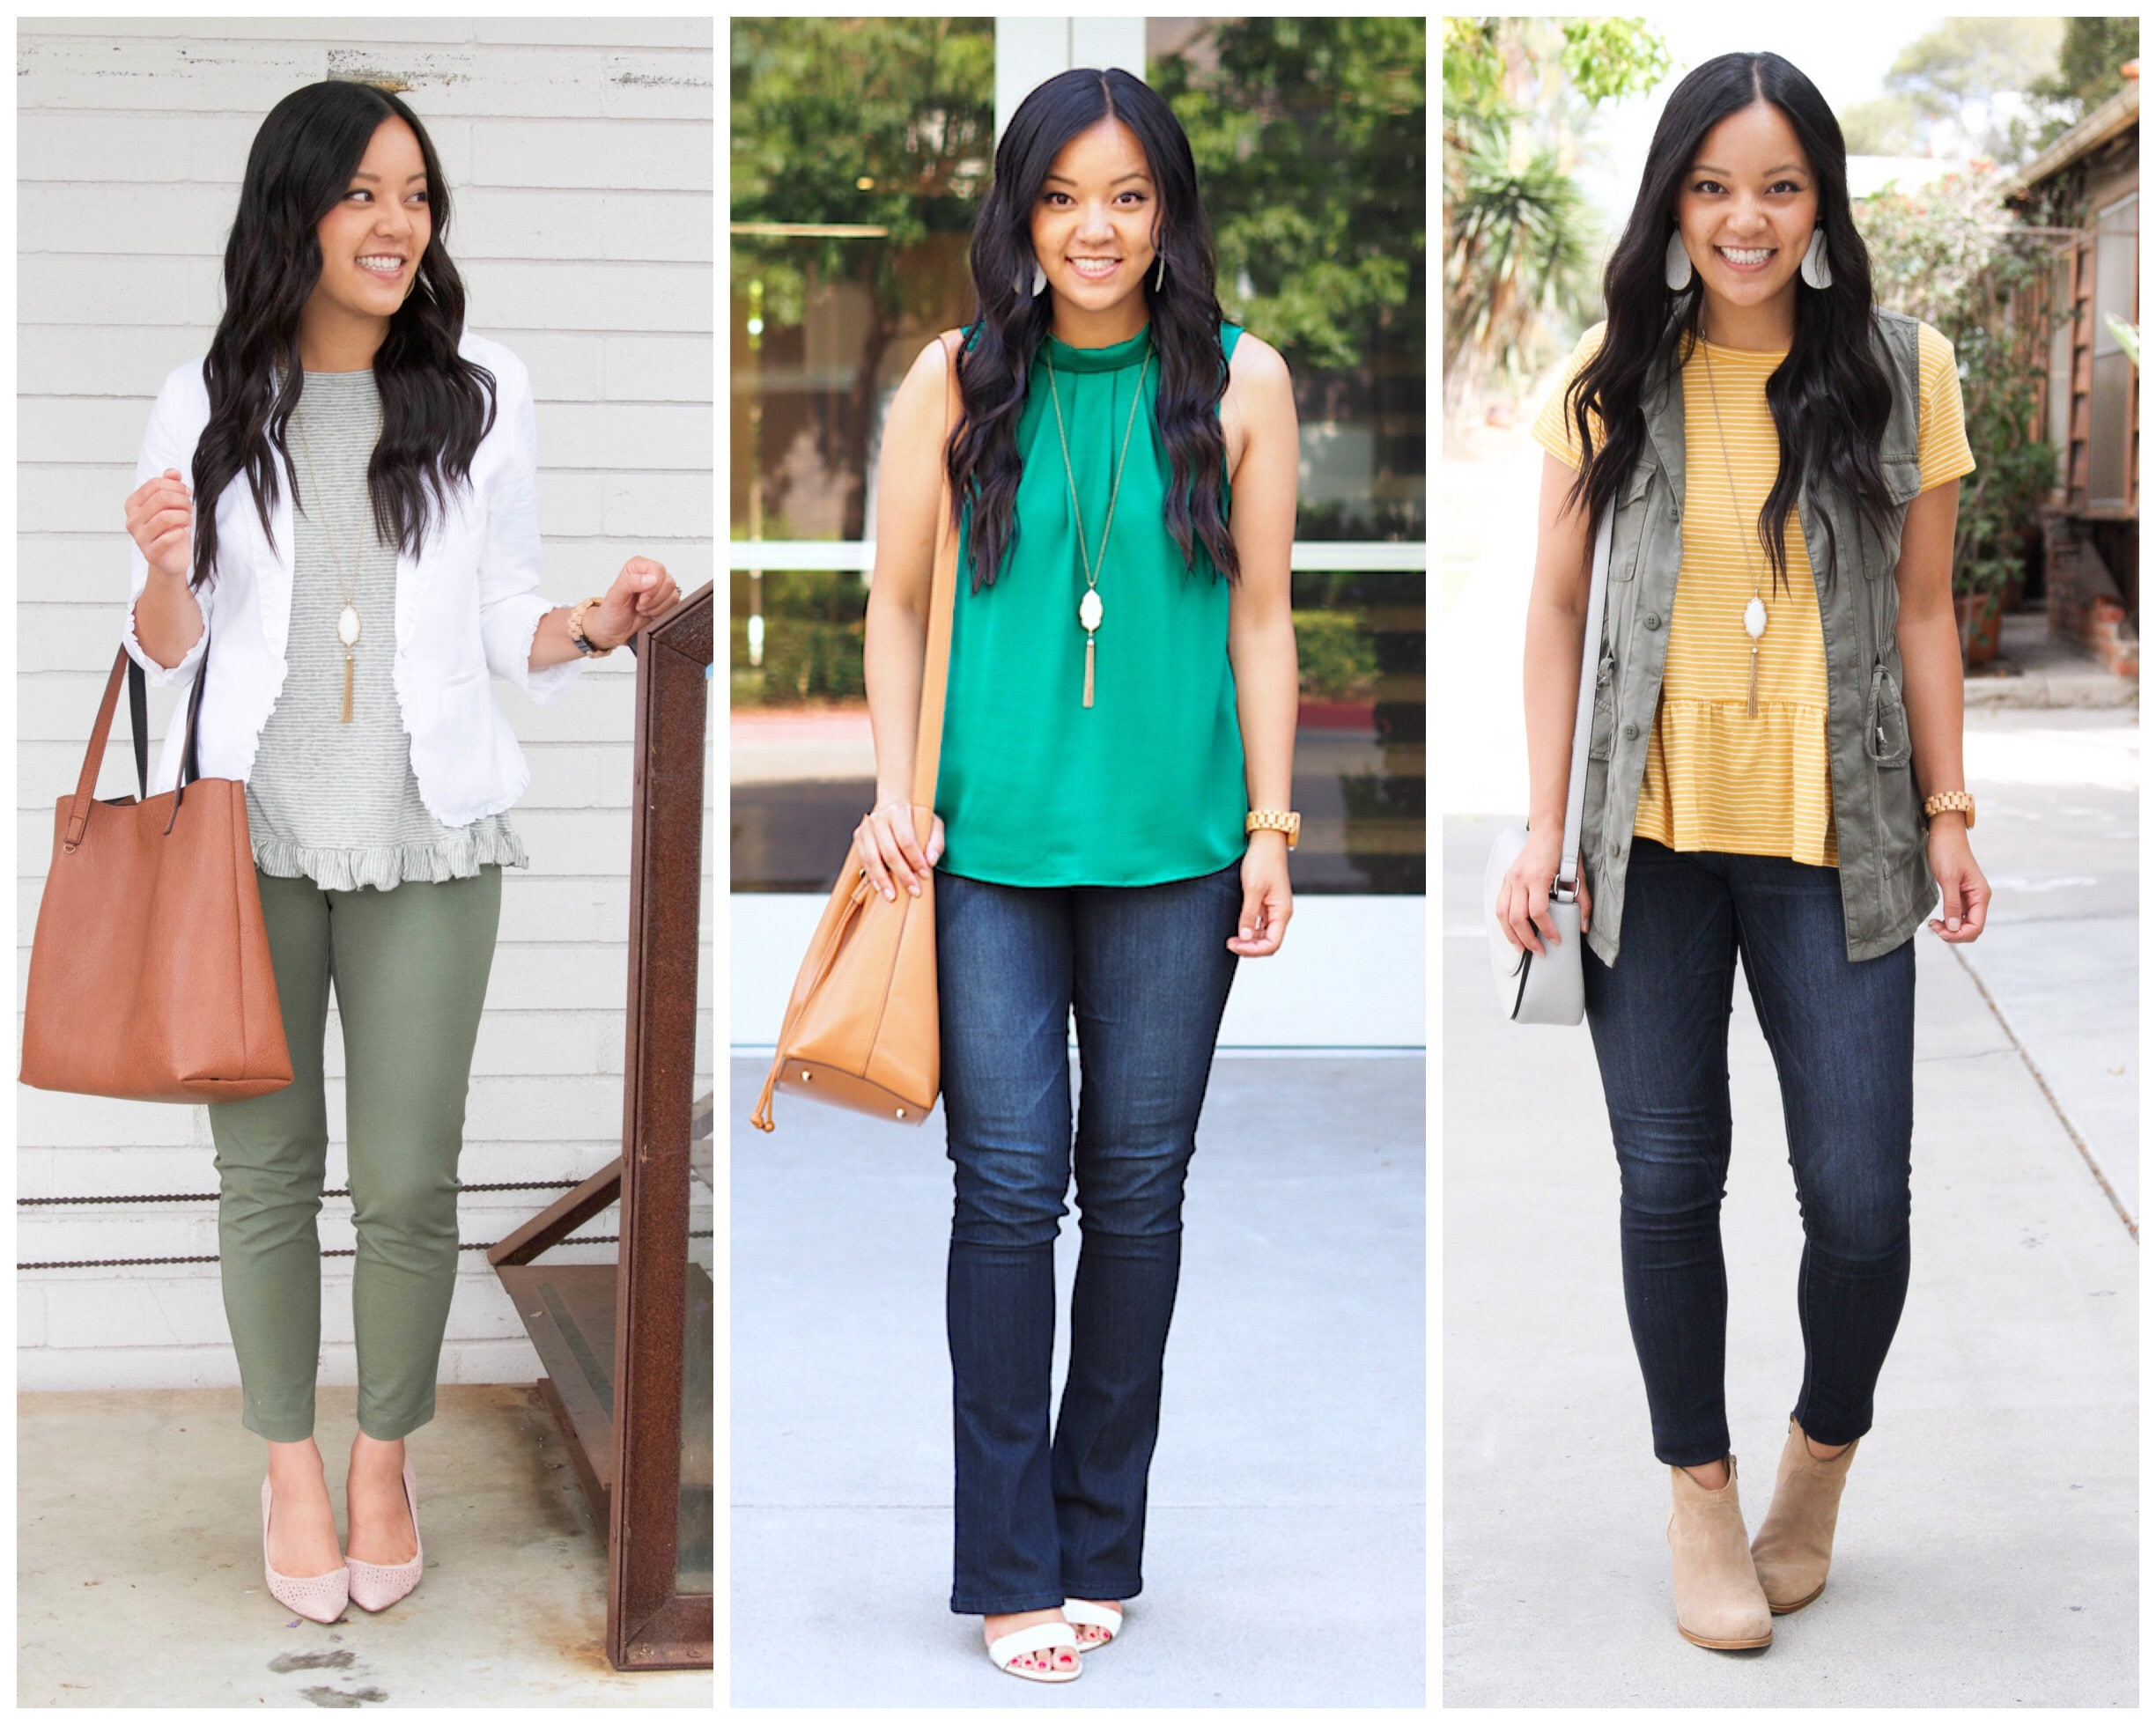 Accessories: White Pendant Necklace Outfits